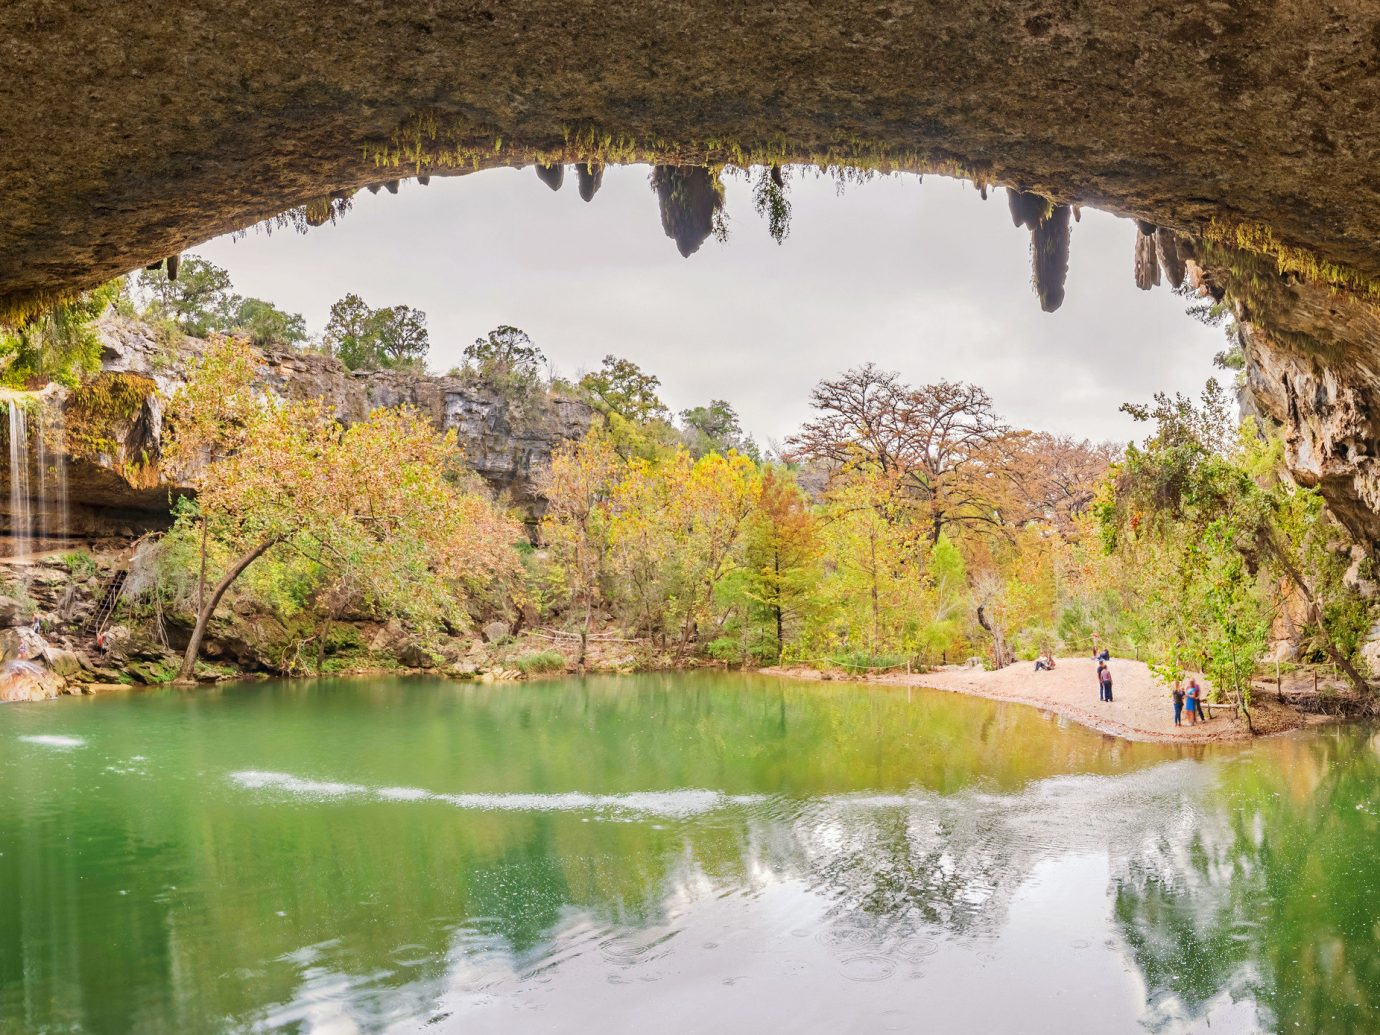 Trip Ideas outdoor tree water Nature River reflection wadi waterway autumn pond surrounded